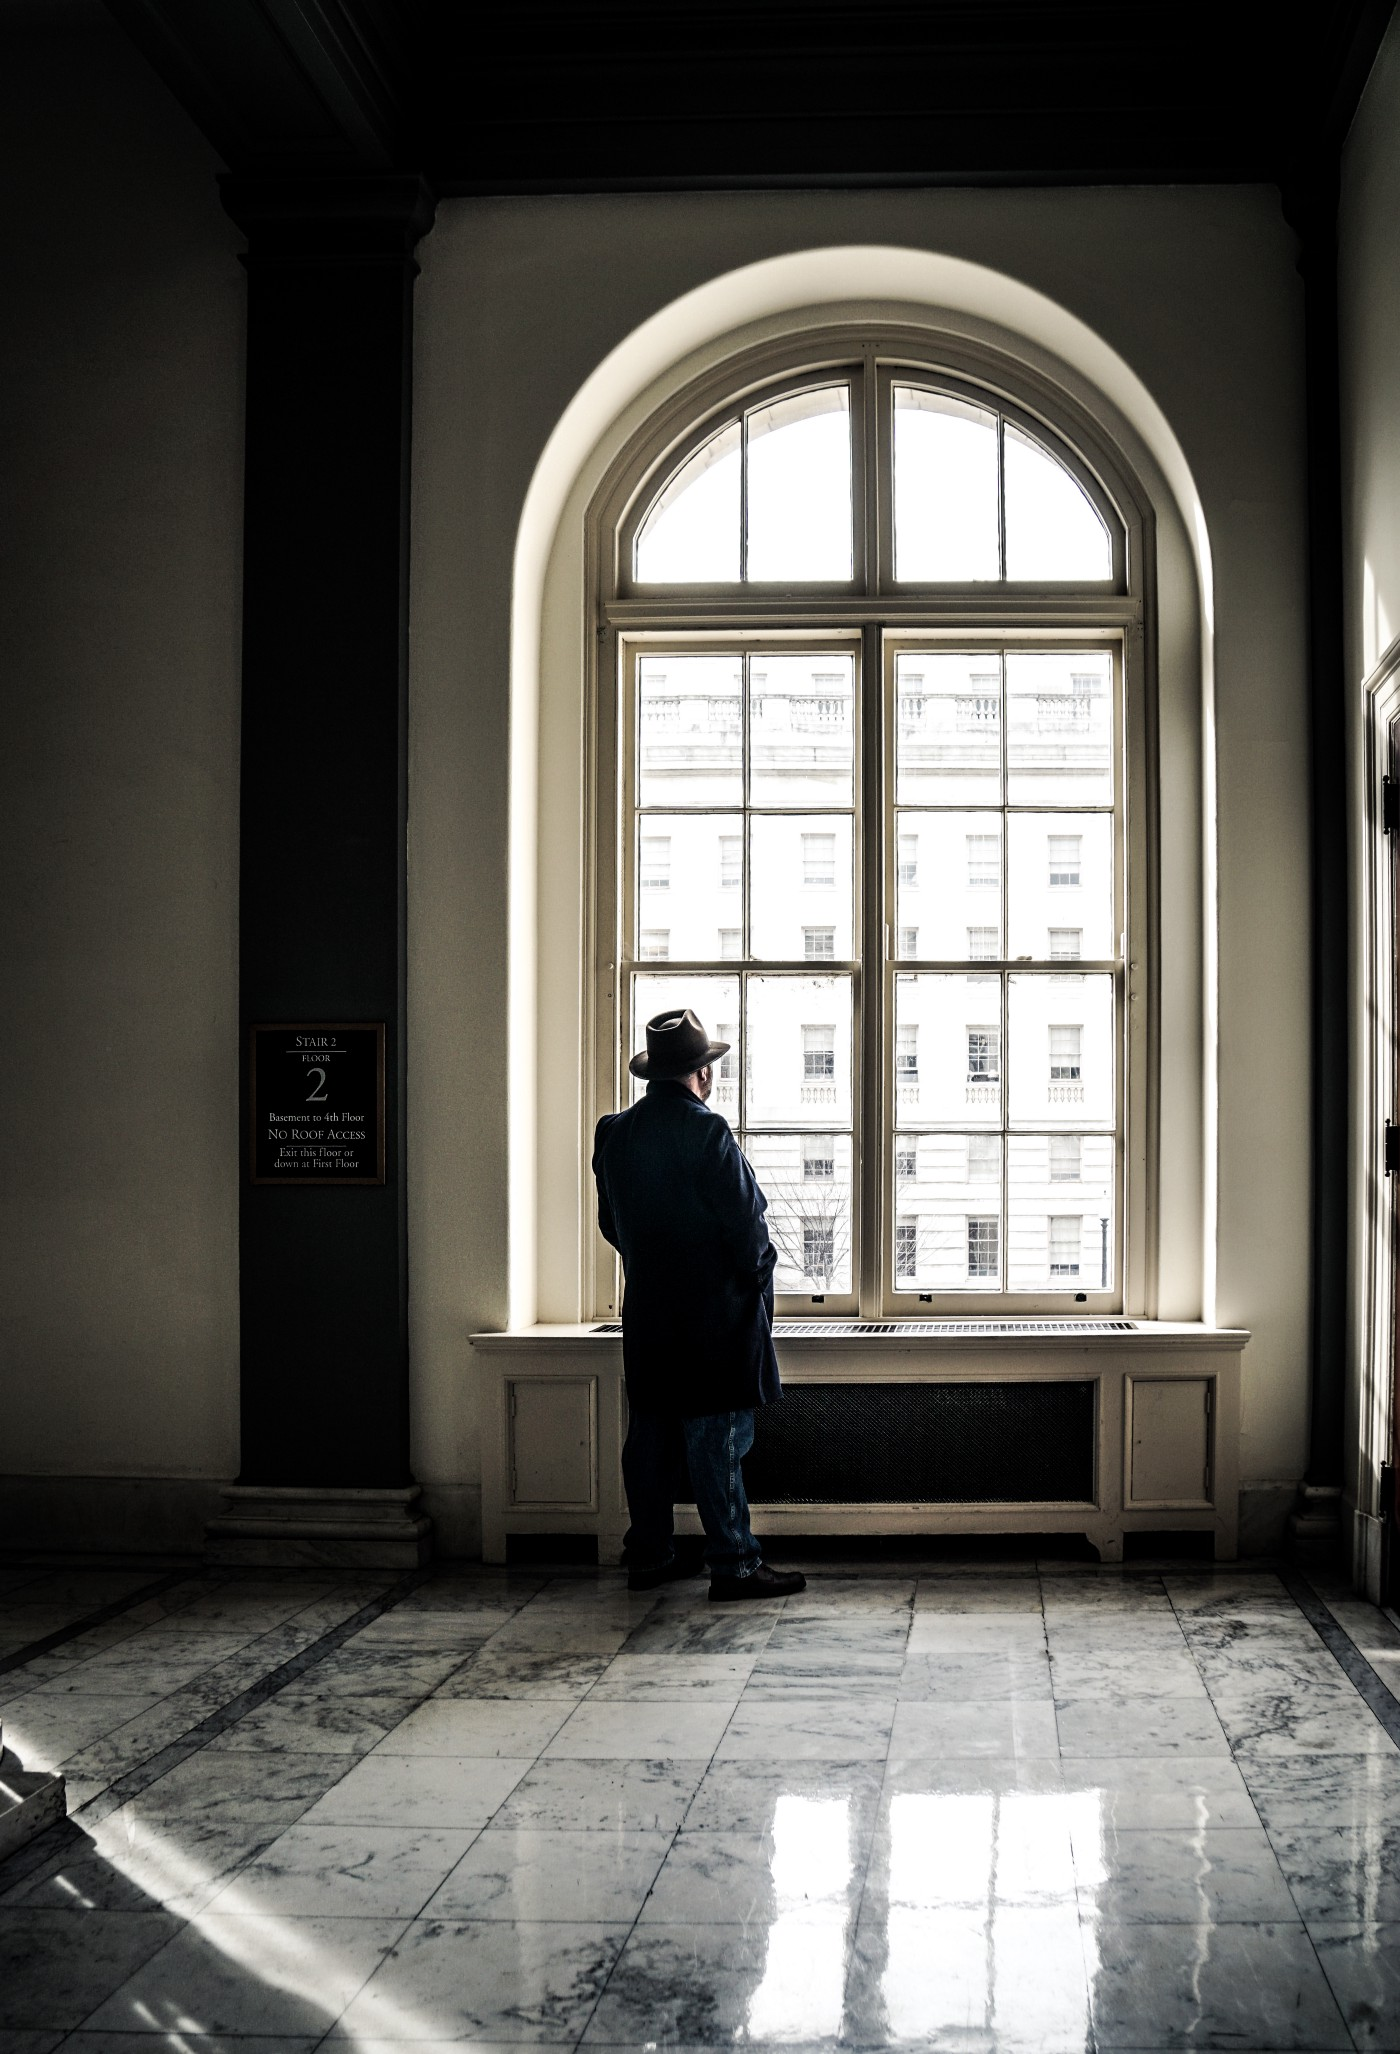 Man with coat and hat, looking outside the window